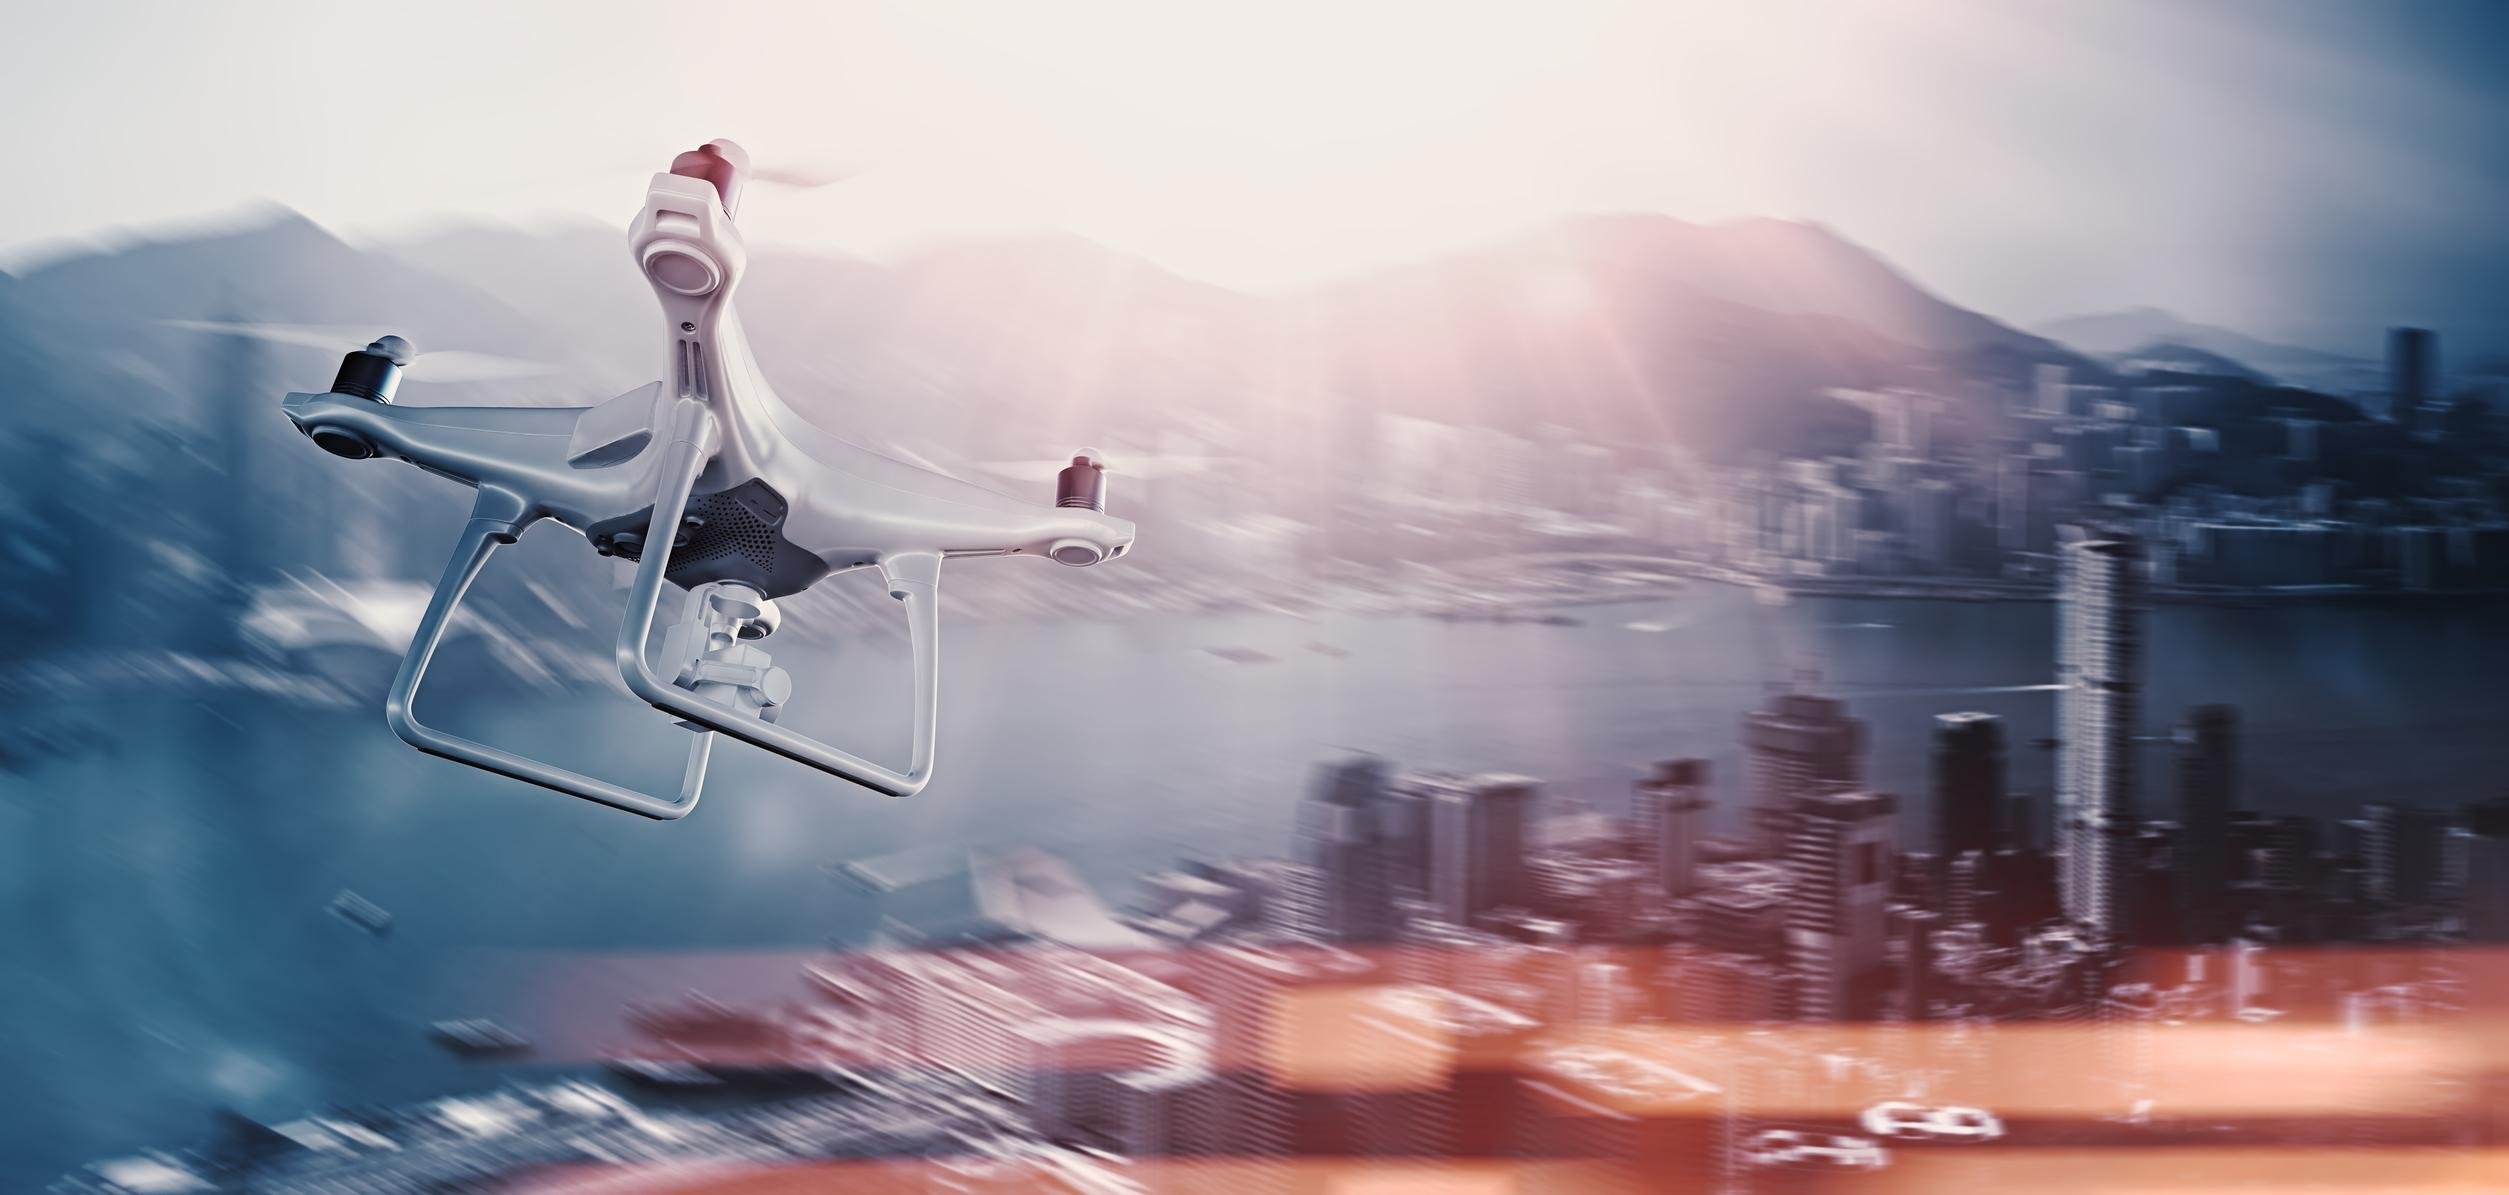 Drones-innovation - Thalesgroup